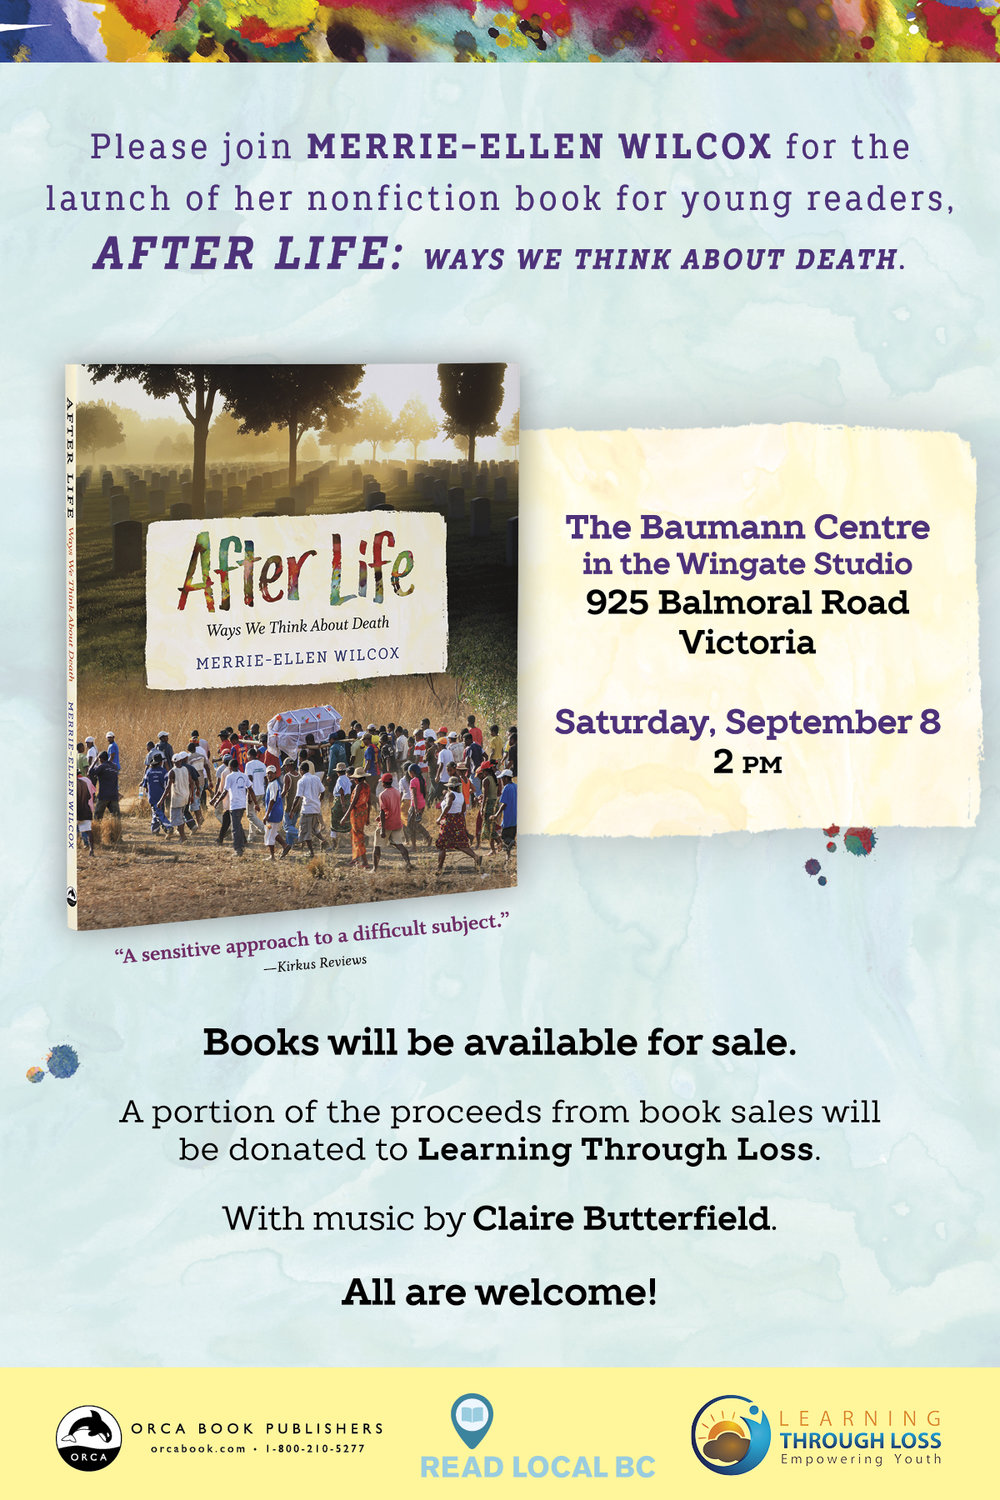 After Life_launch_08-17-18-Evite.jpg